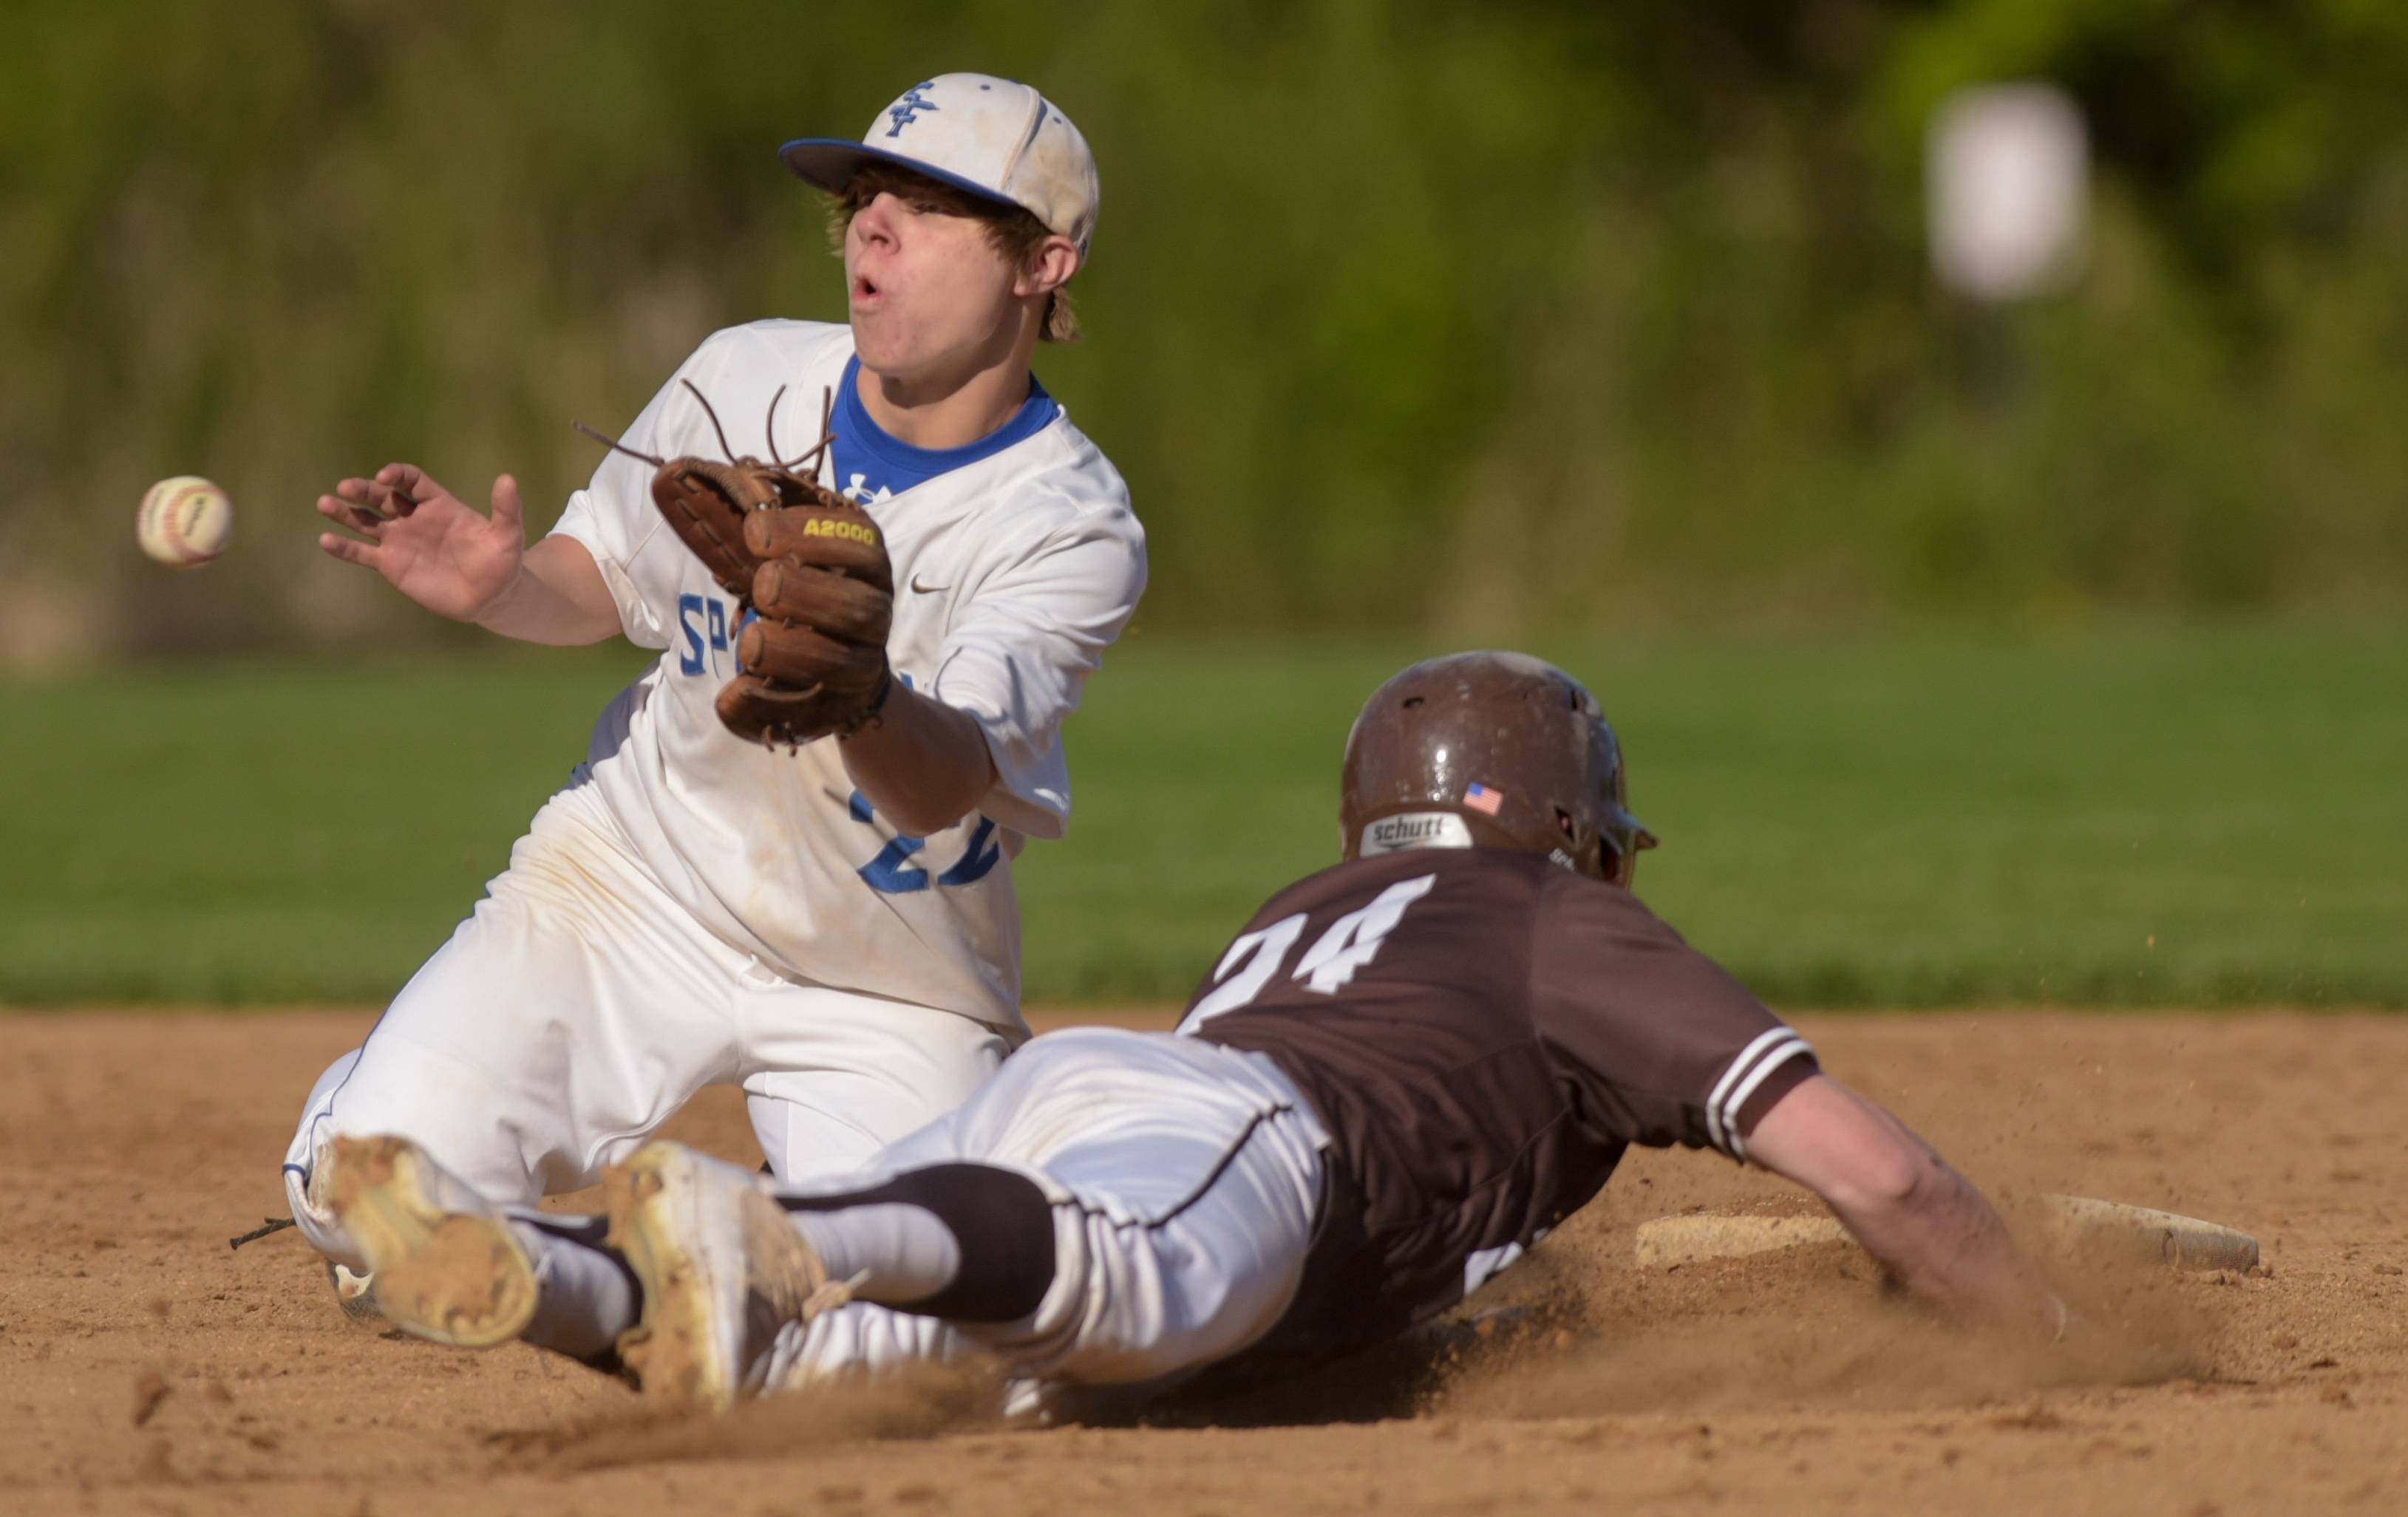 St. Francis' Zach Crescenzo comes up short with the tag on Mt. Carmel's Neil Novosel during varsity baseball in Wheaton Monday.